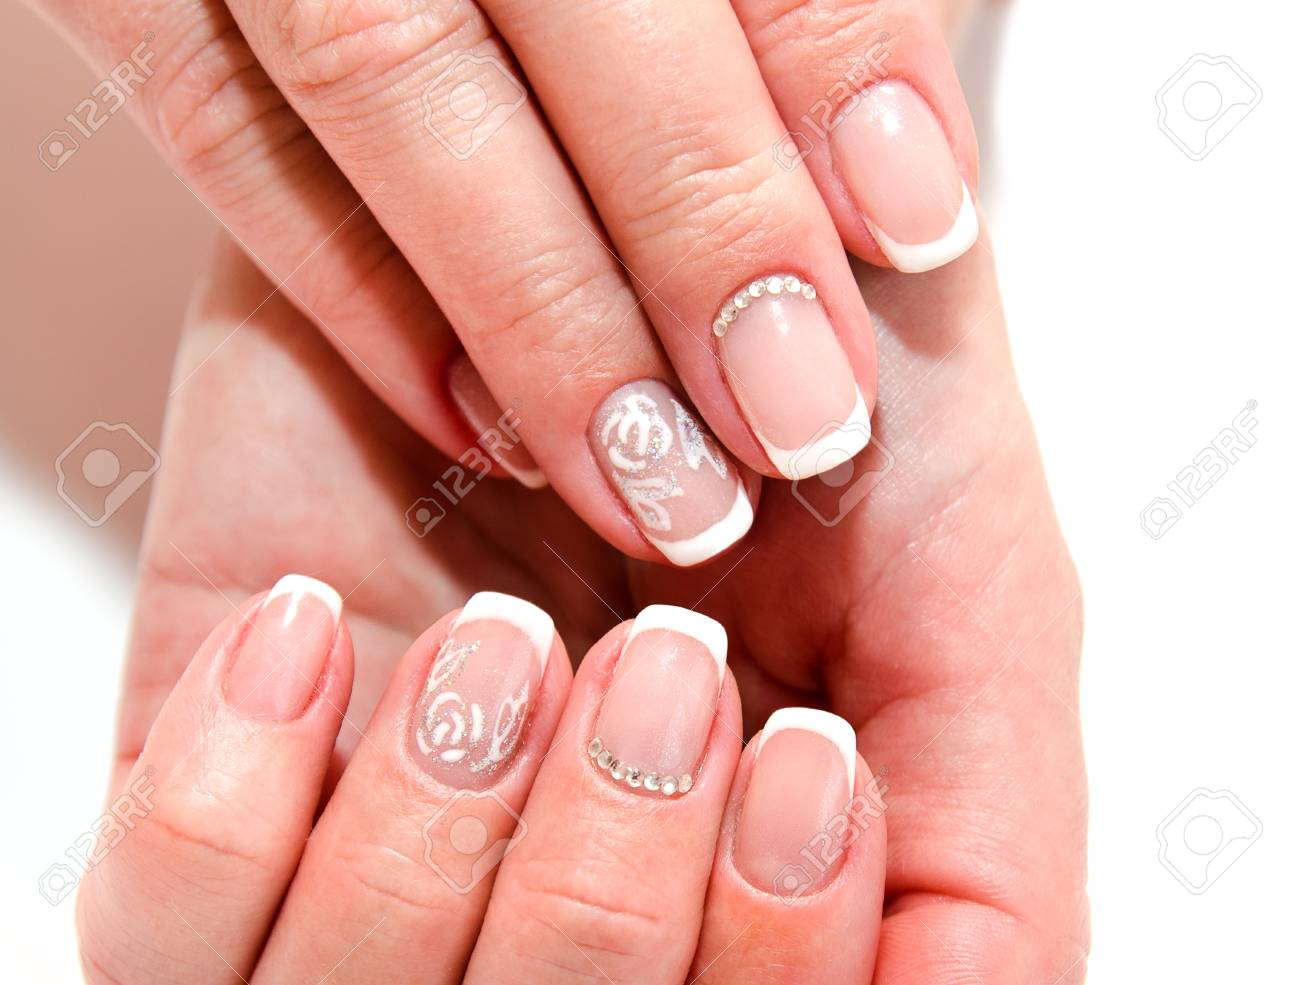 Woman S Nails With Beautiful French Manicure Fashion Design With Stock Photo Picture And Royalty Free Image Image 108743980